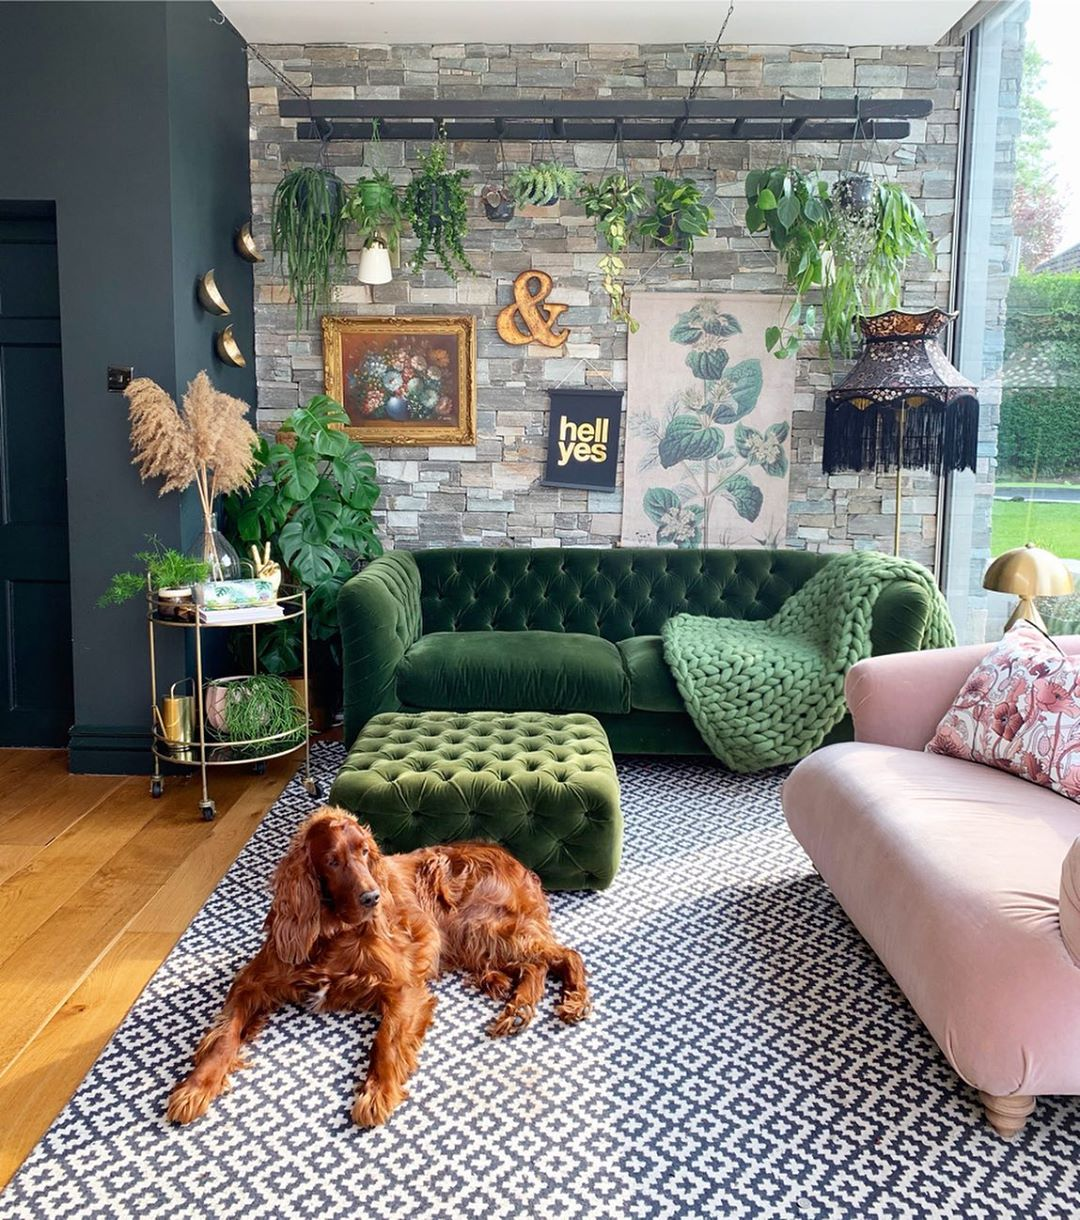 Cozy living space, with green sofa and cozy dog